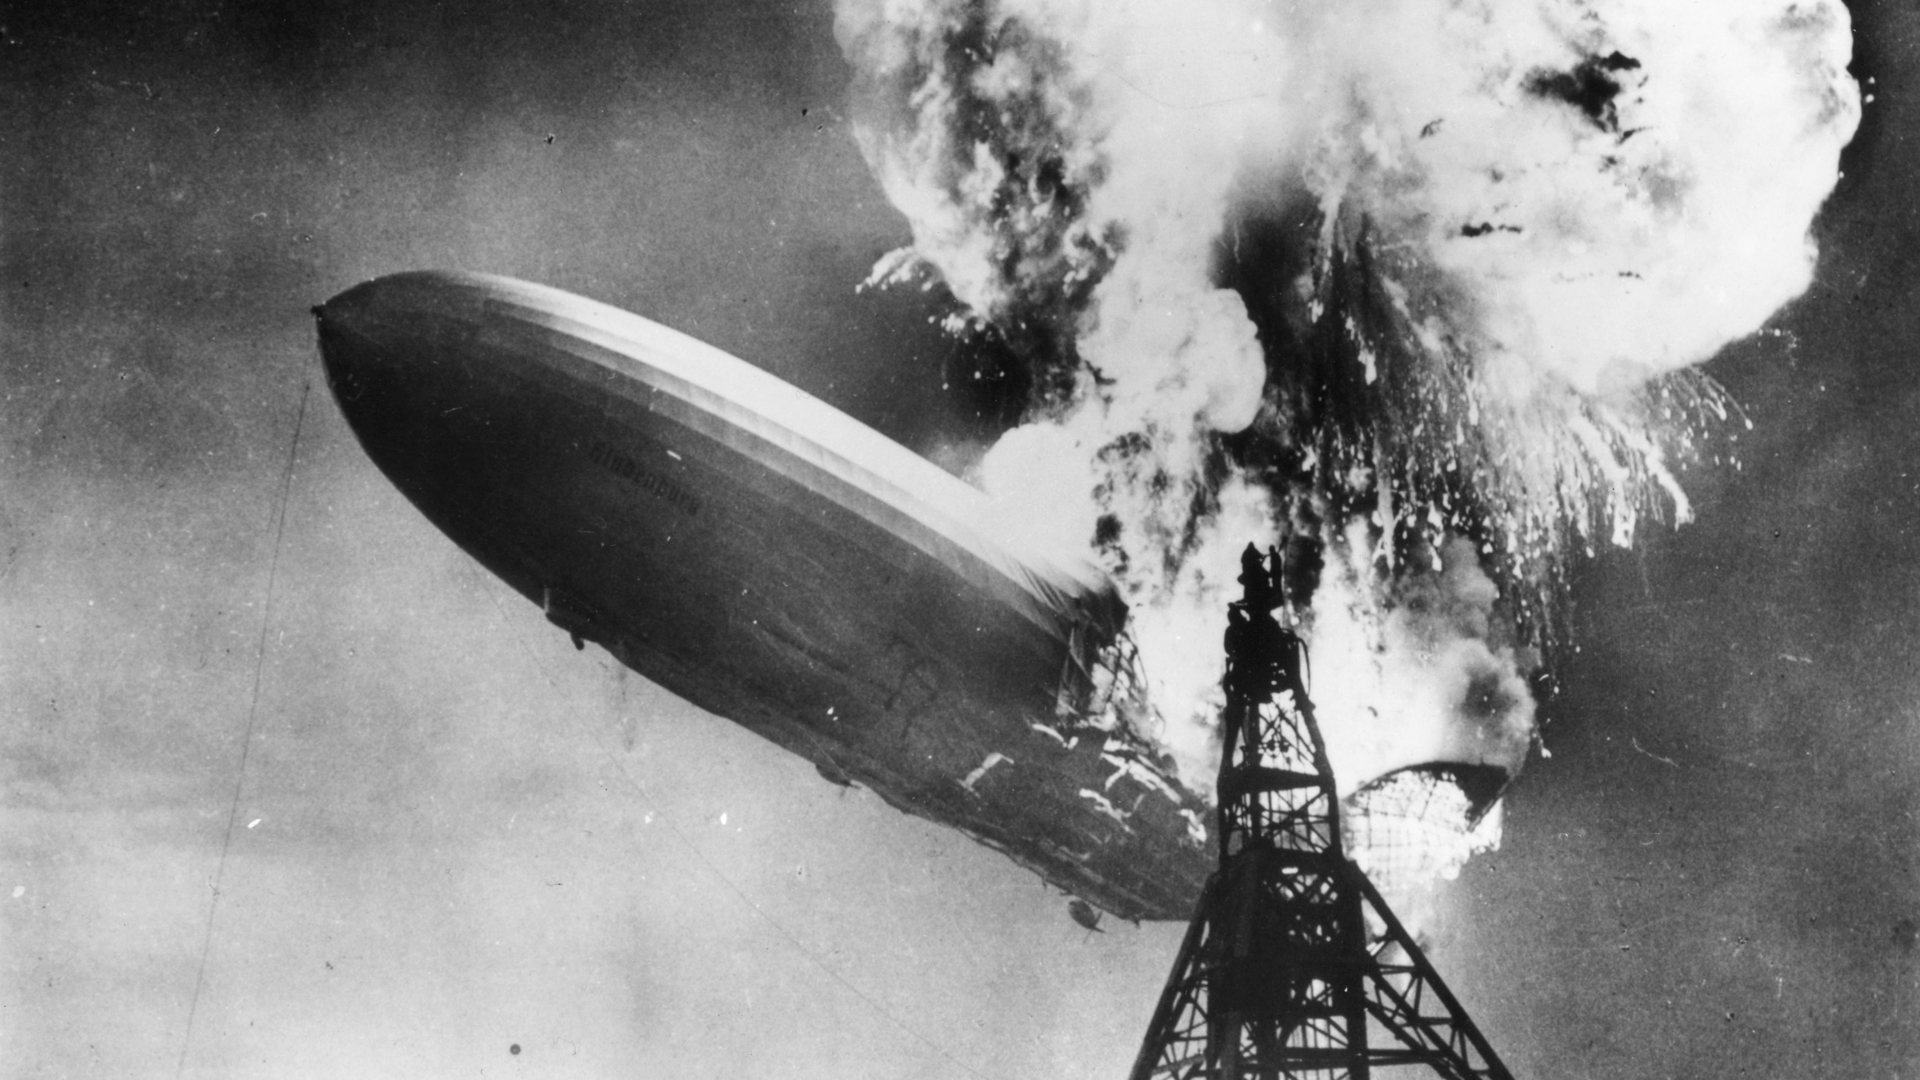 The Hindenburg disaster at Lakehurst, New Jersey on May 1937. (Credit: Sam Shere/Getty Images)